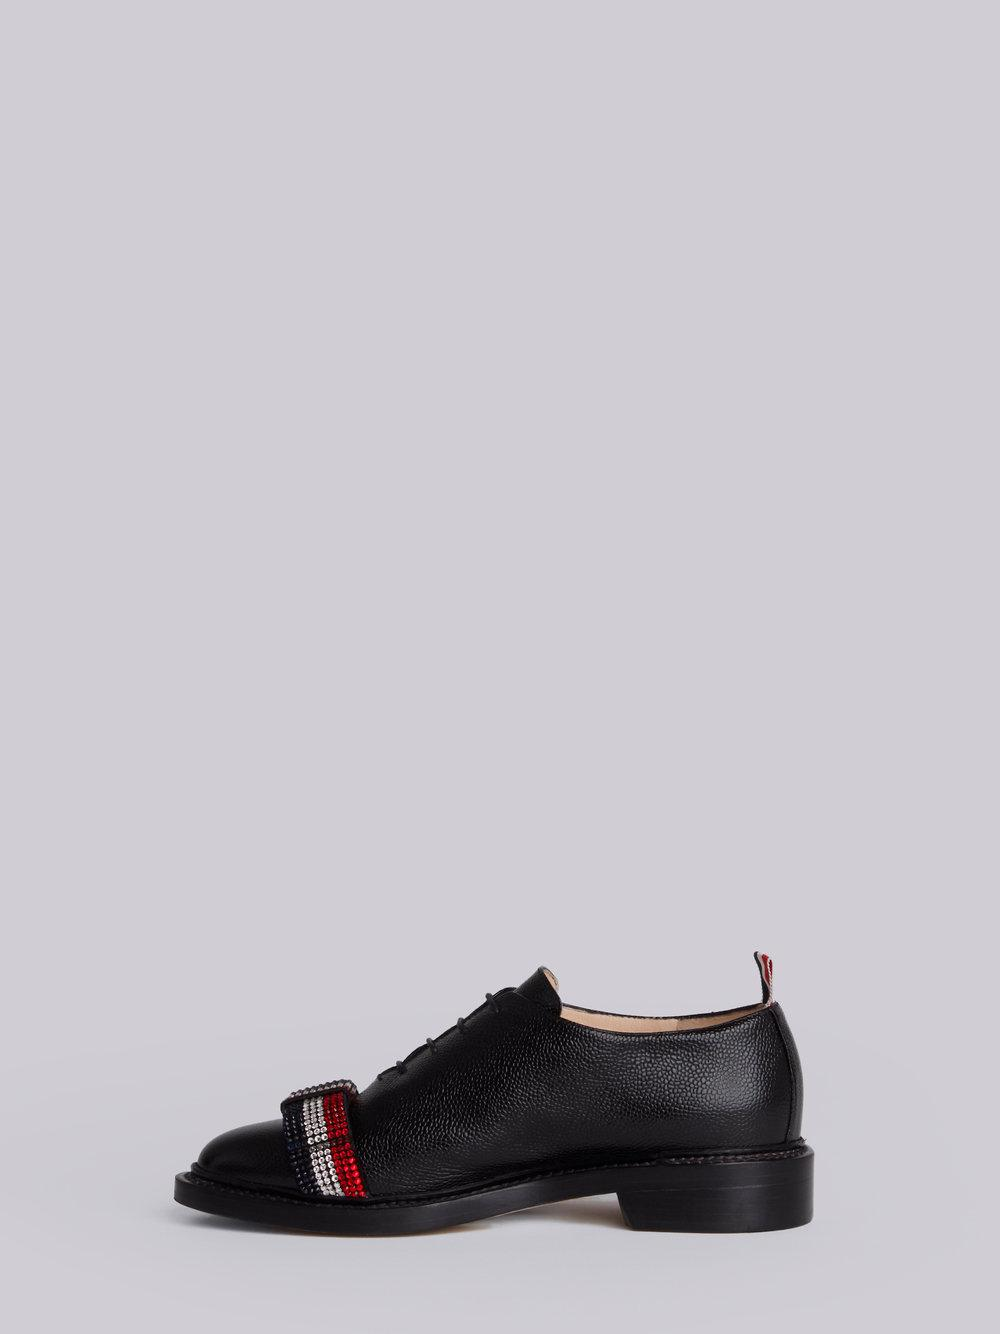 Wholecut With Bejewelled Bow & Leather Sole In Pebble Lucido Leather - Black Thom Browne RLnlyUBdPI